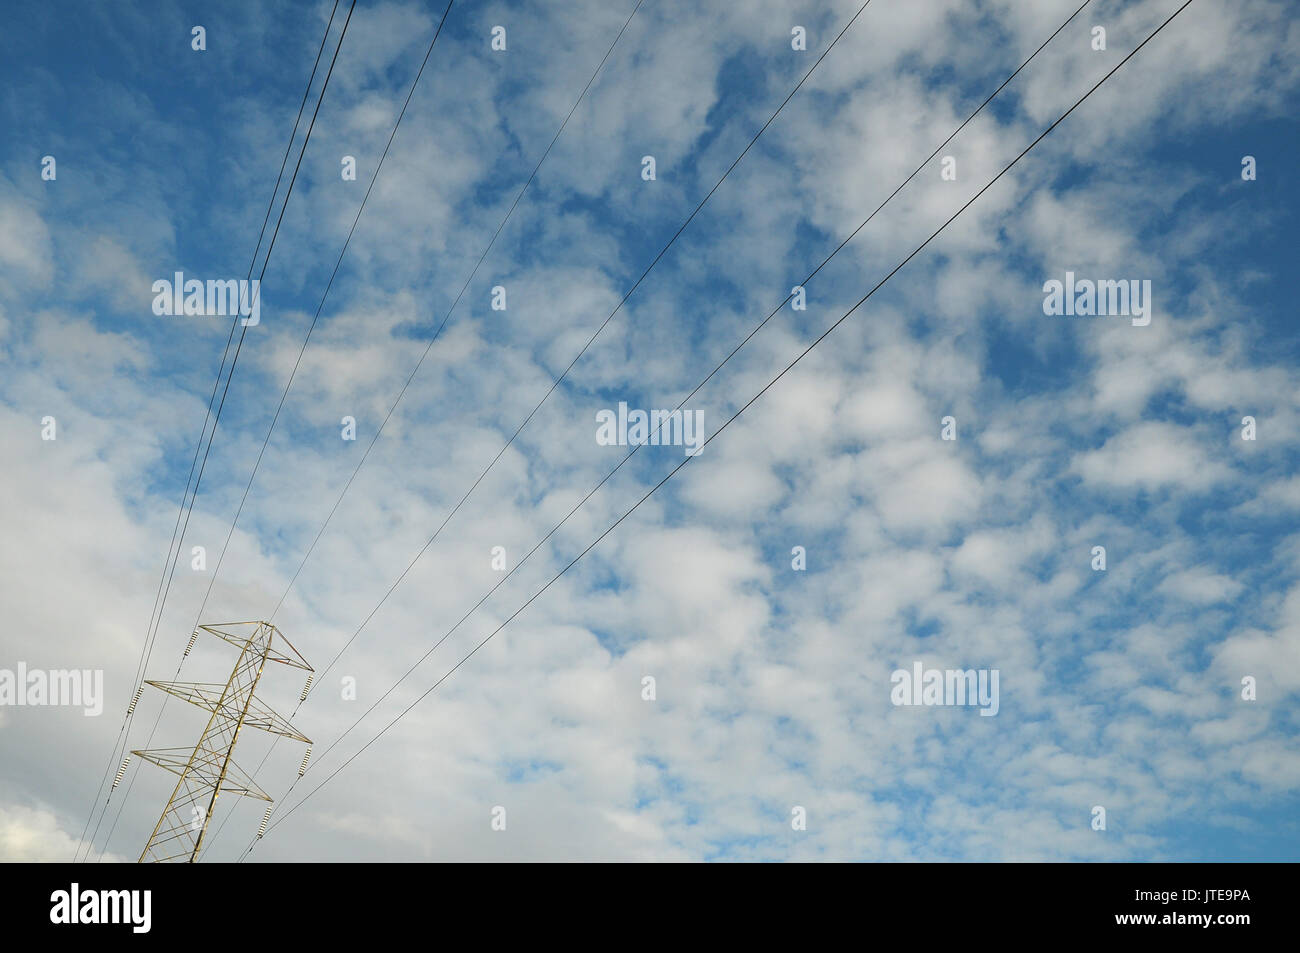 Overhead Electric Cables Stockfotos & Overhead Electric Cables ...